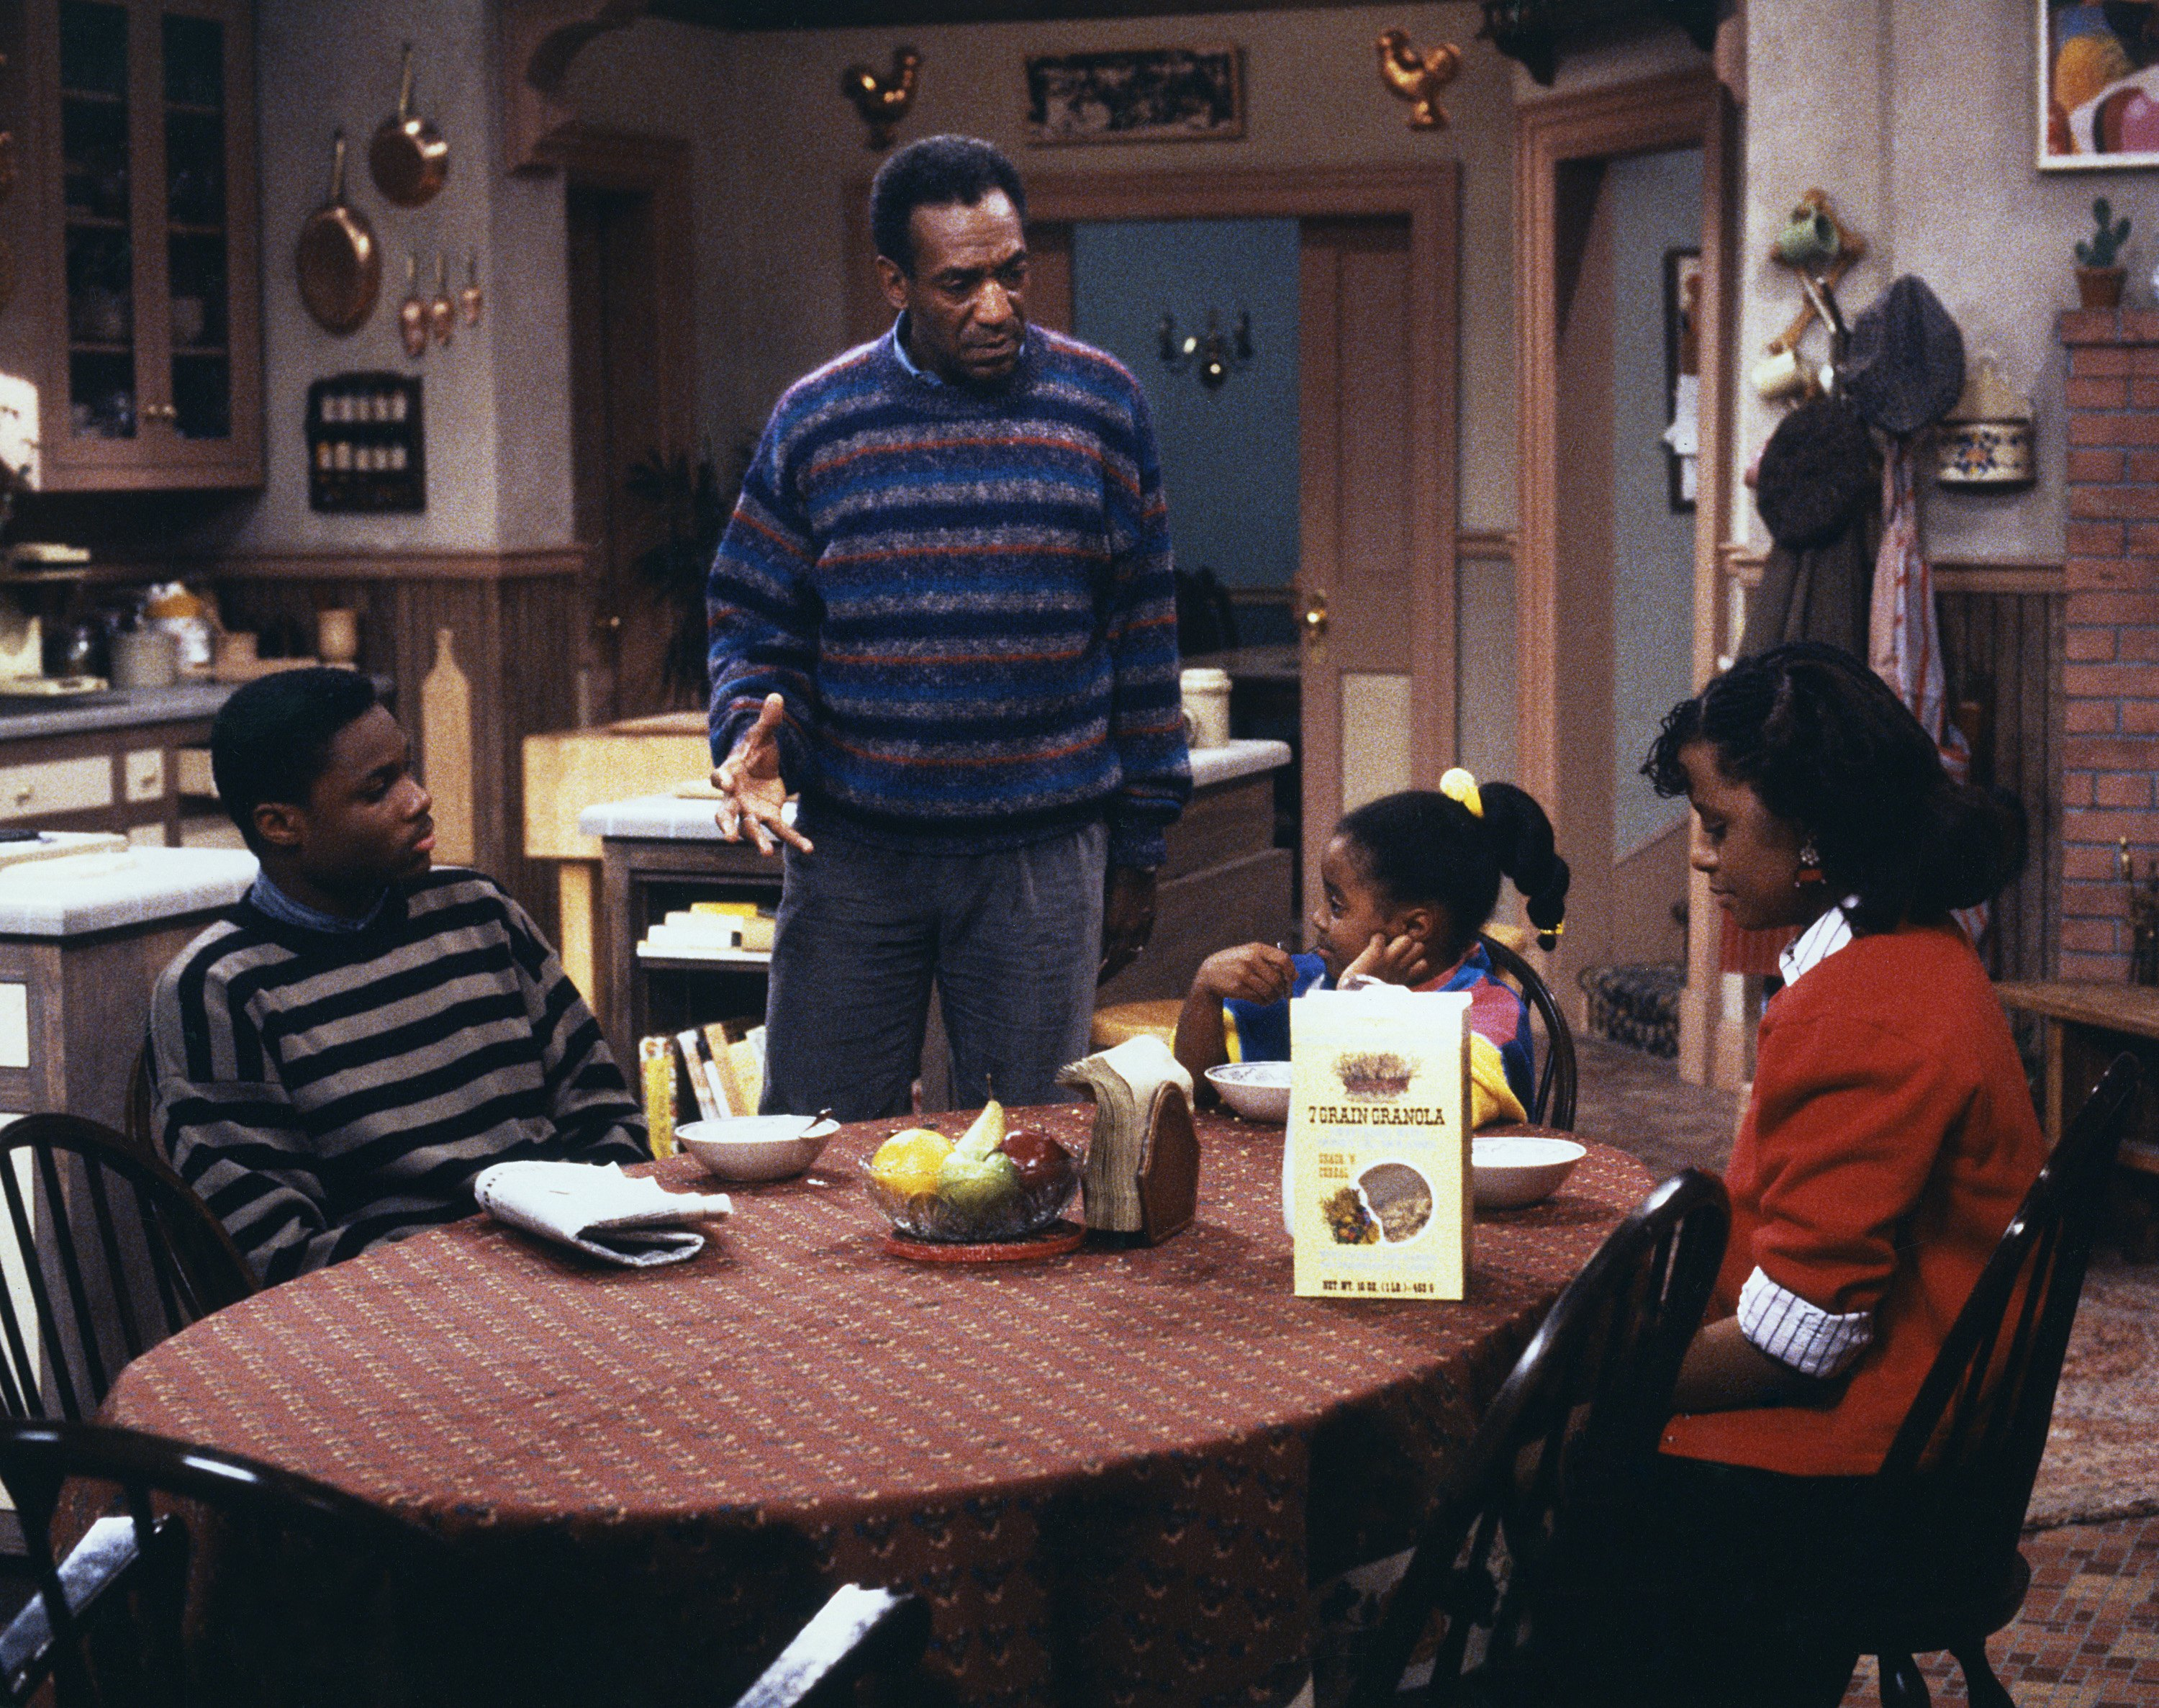 (Left to Right) Malcolm-Jamal Warner as Theodore 'Theo' Huxtable, Bill Cosby as Dr. Heathcliff 'Cliff' Huxtable, Keshia Knight Pulliam as Rudy Huxtable, Tempestt Bledsoe as Vanessa Huxtable on The Cosby Show.